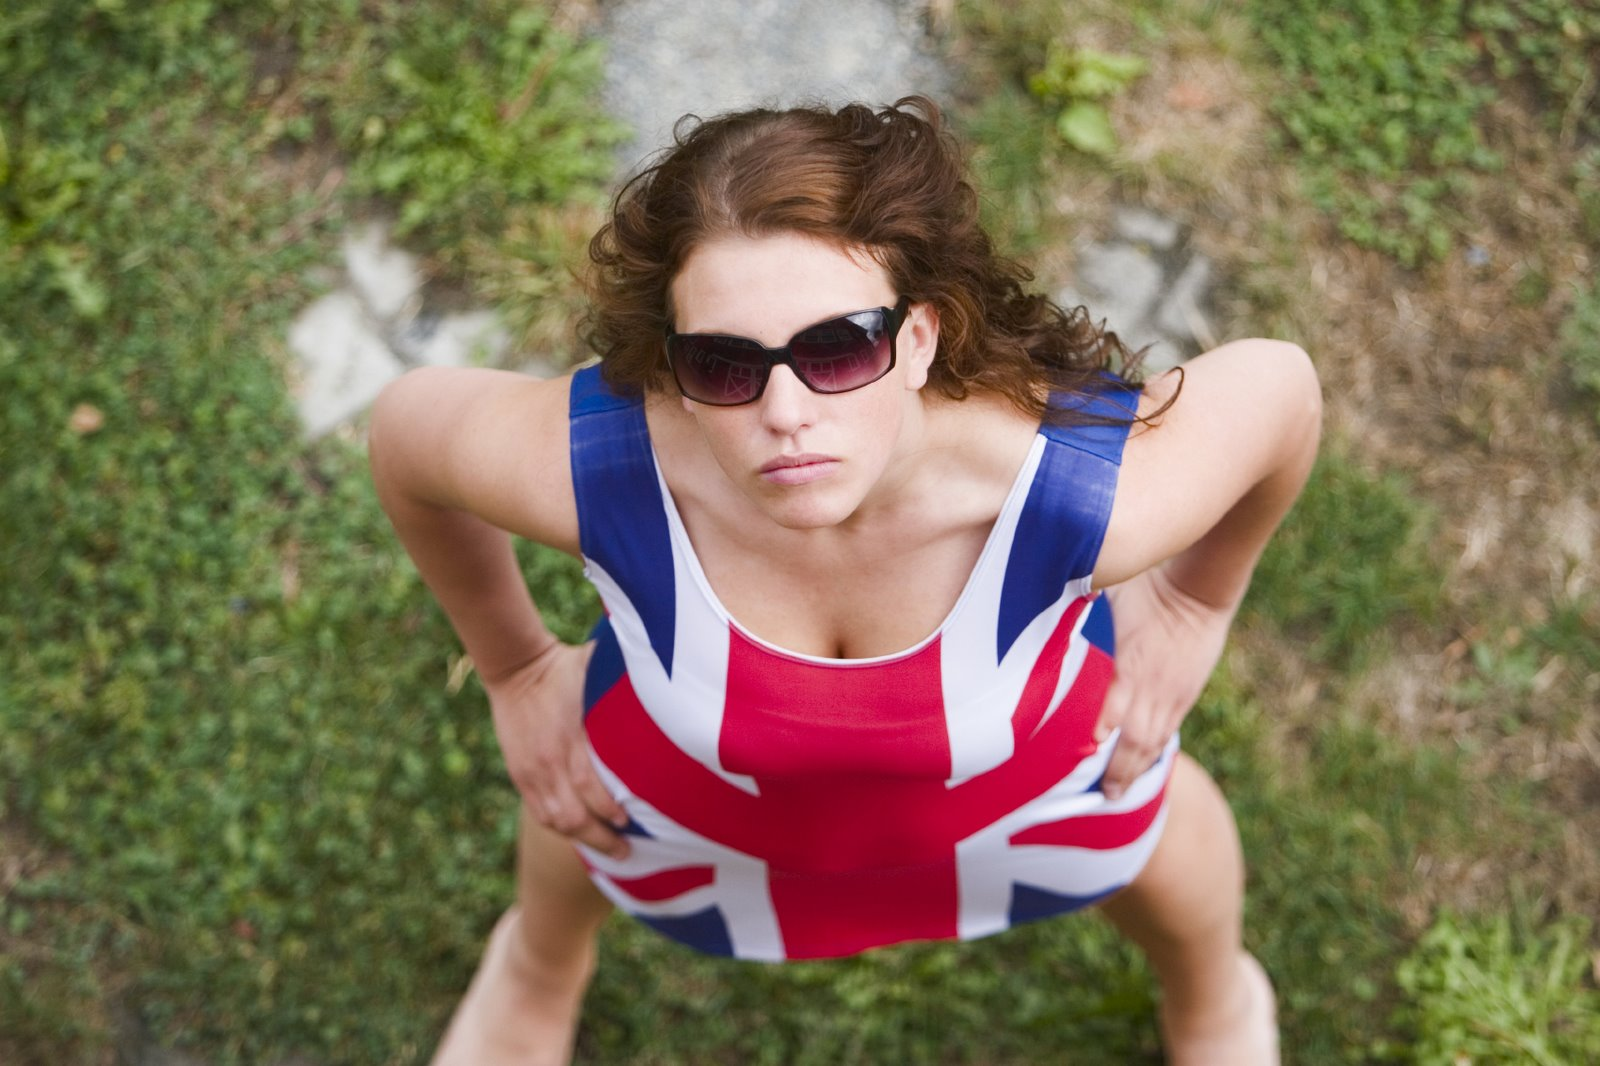 picture showing a woman in a great britain dress